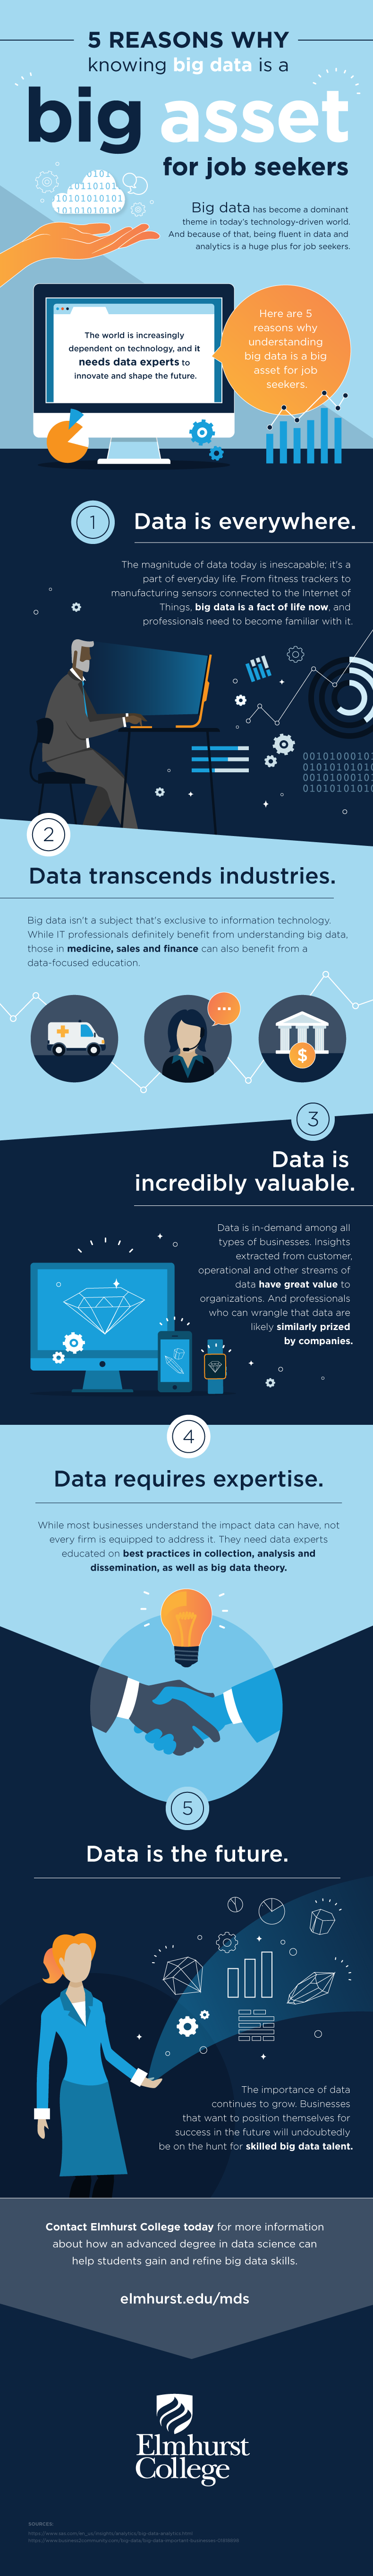 """5 Reasons Why Knowing Big Data is a Big Asset for Job Seekers"" Infographic"